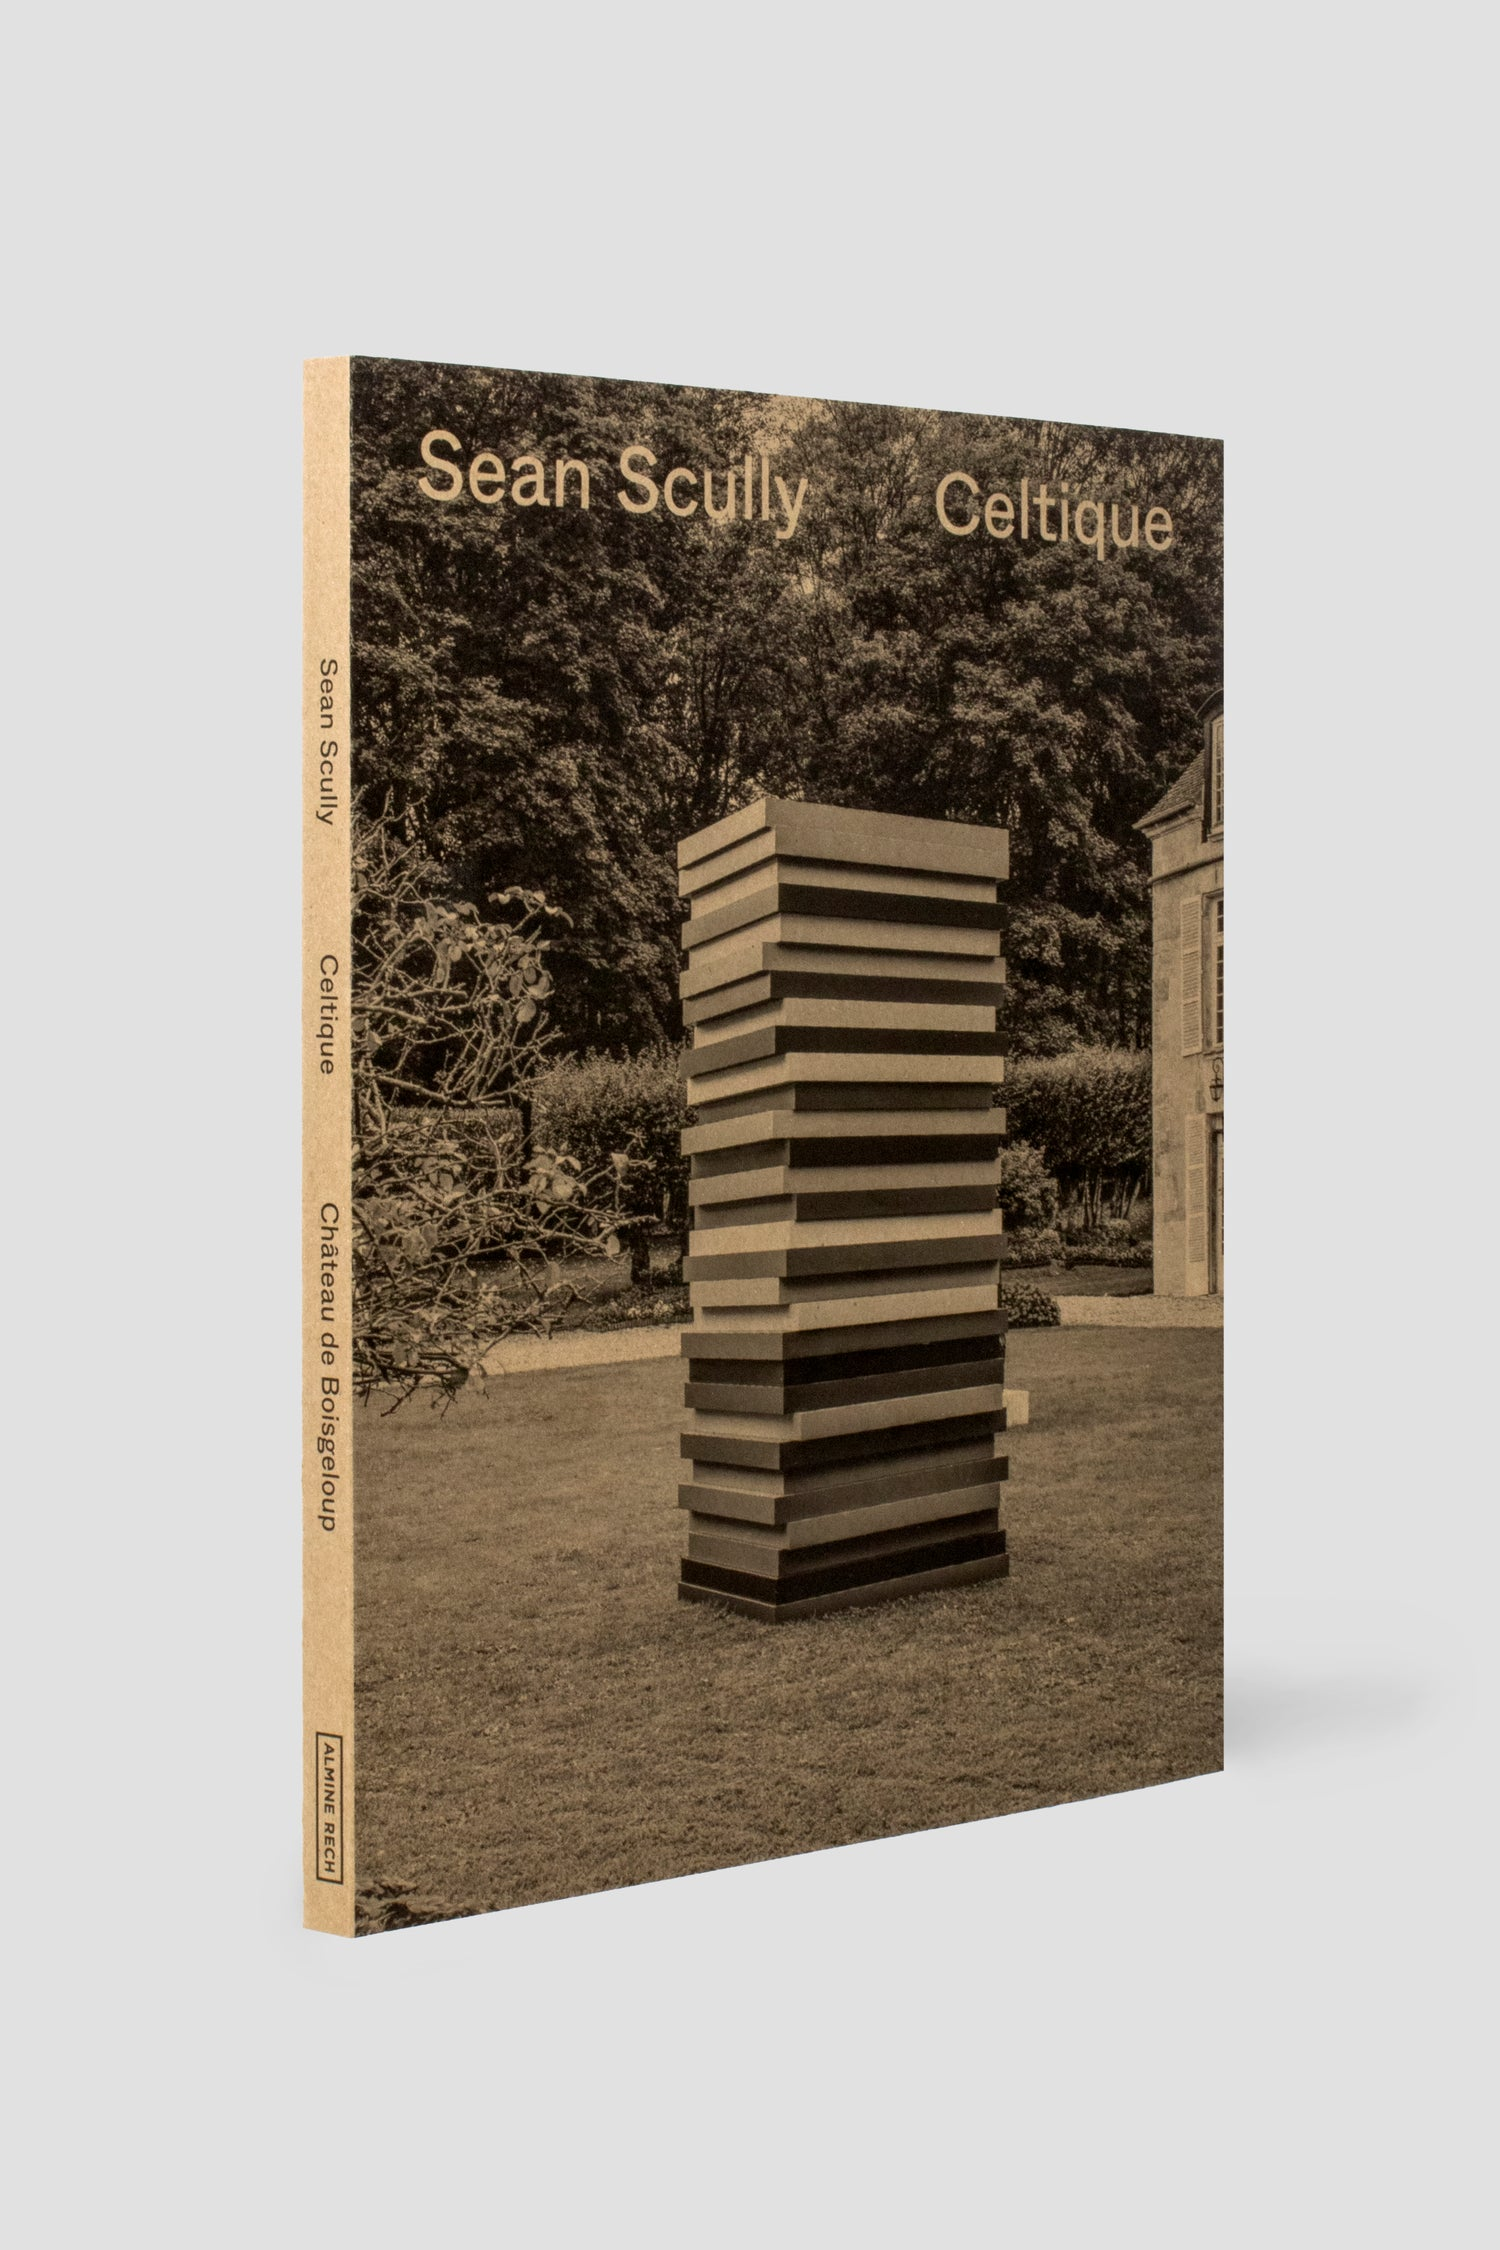 Image of Sean Scully - Celtique